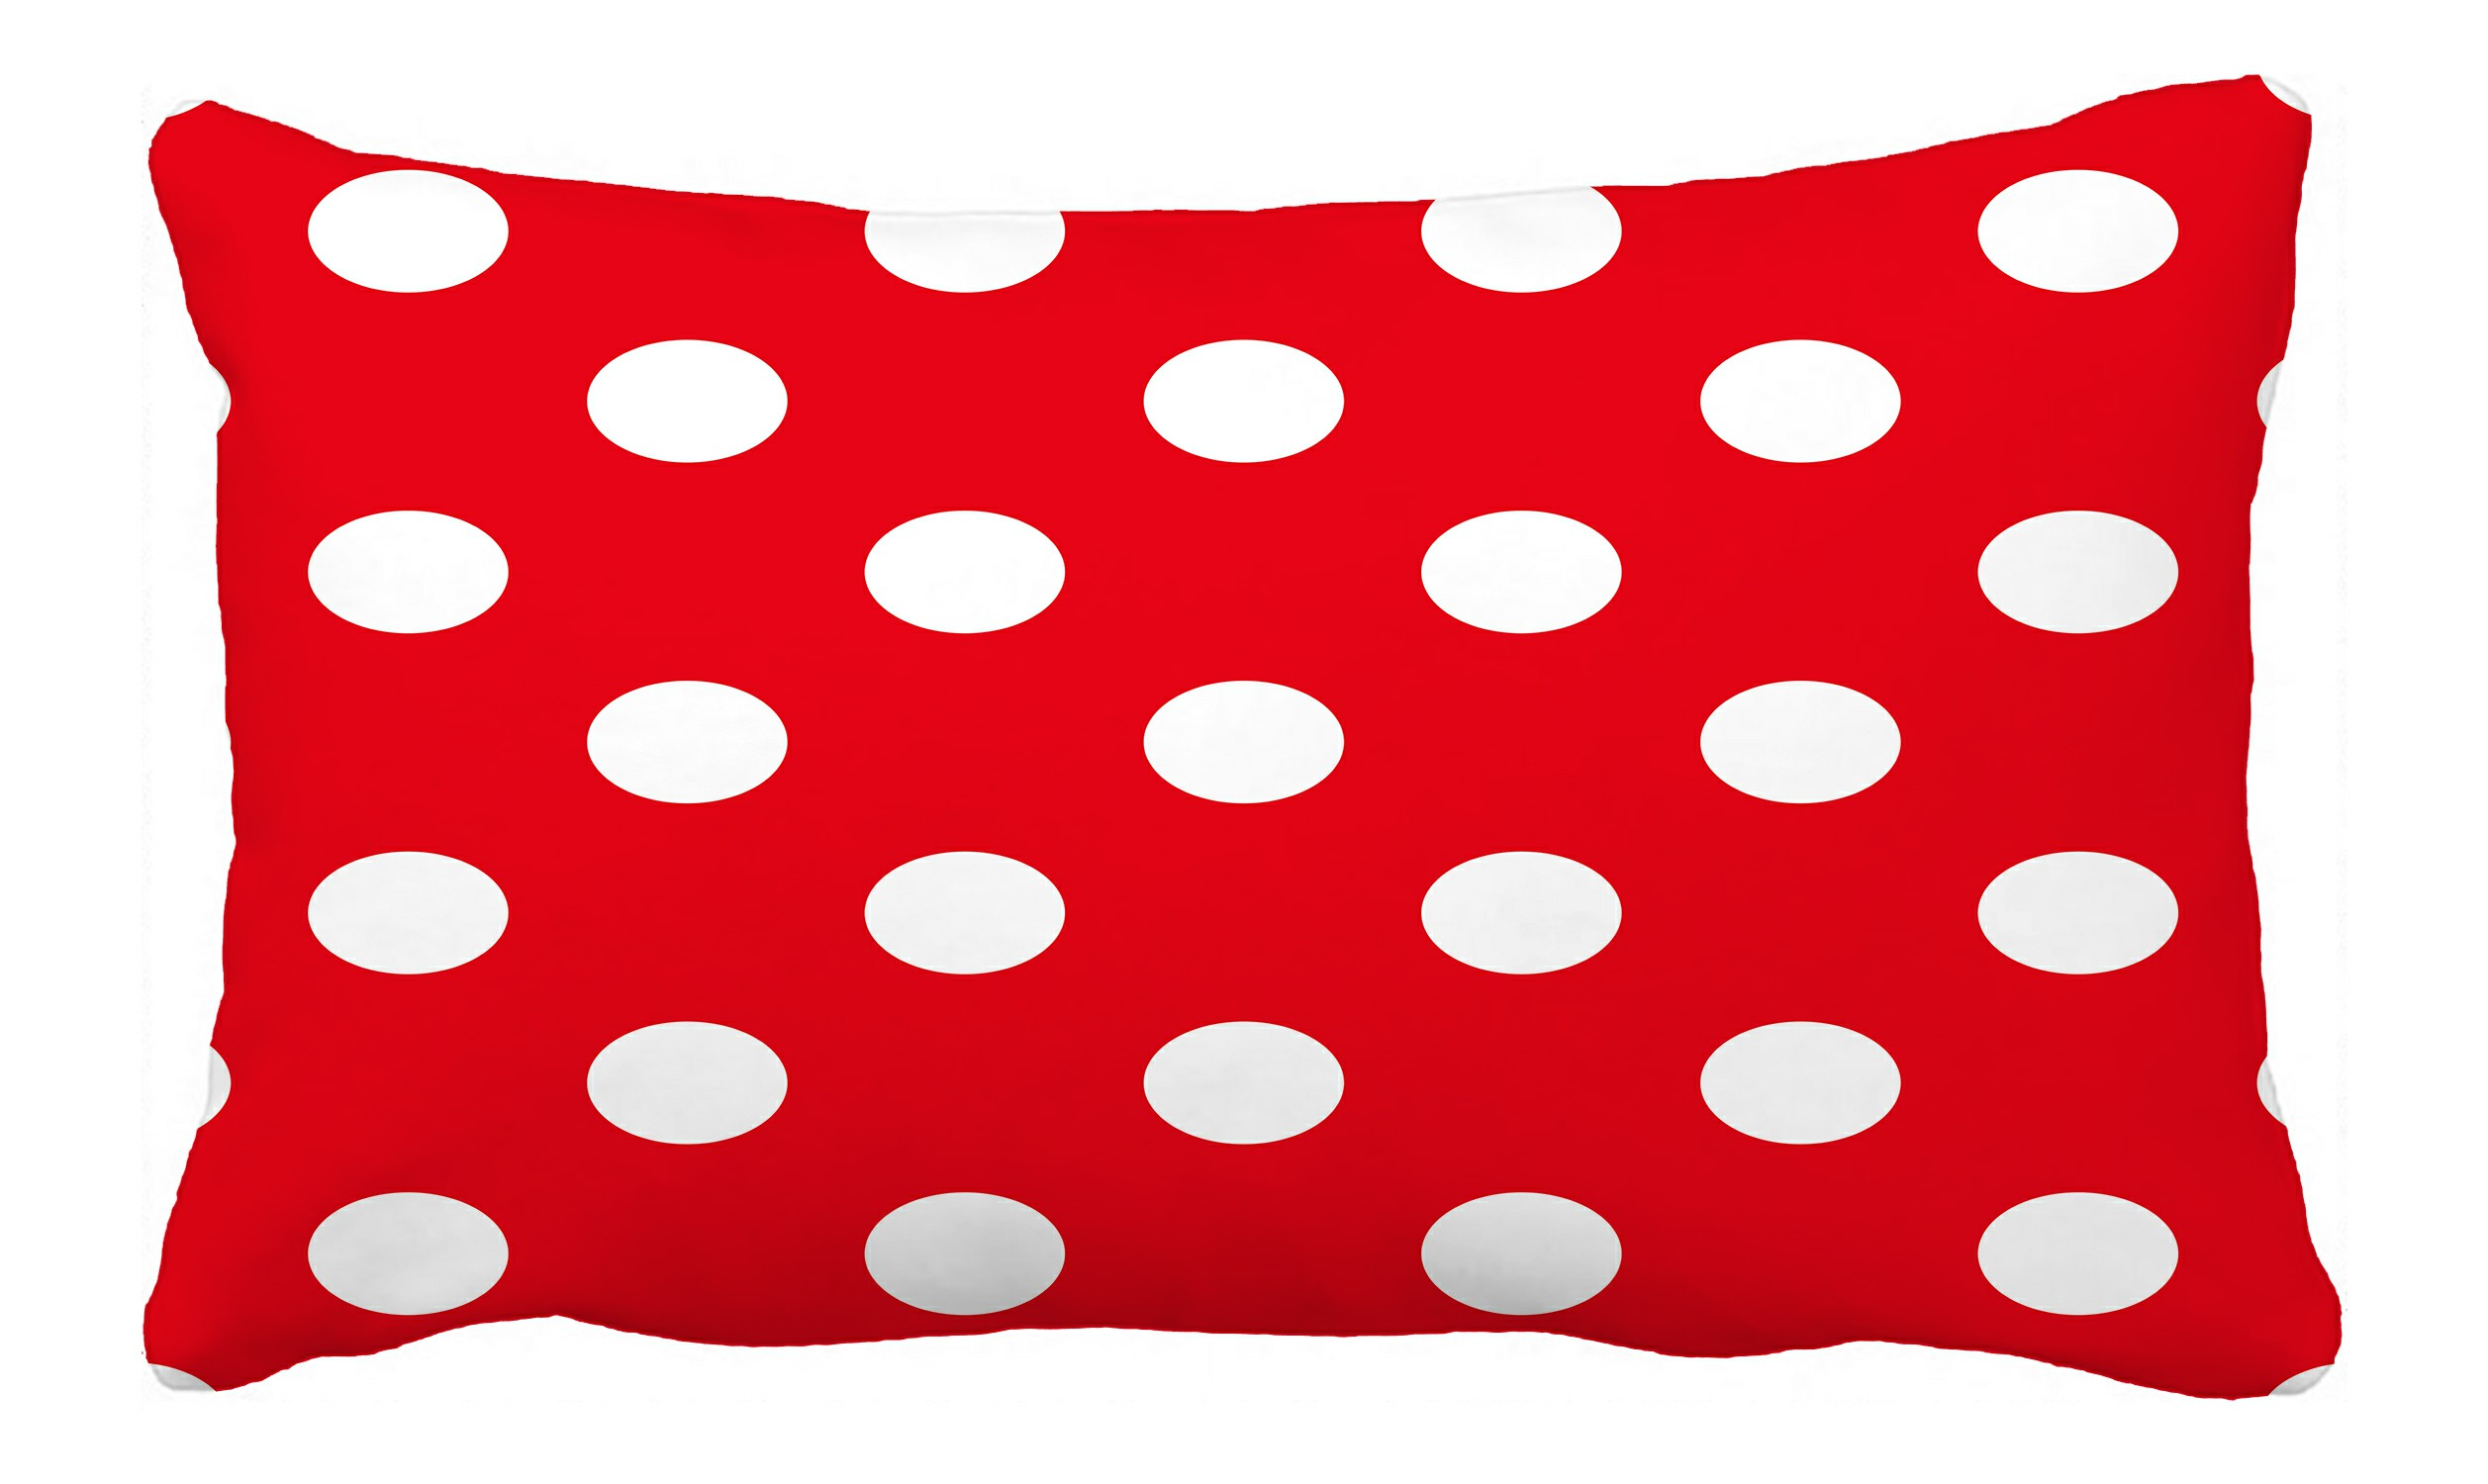 Abphqto Red Polka Dot Pillow Case Pillow Cover Pillow Protector Two Sides For Couch Bed 20x30 Inch Walmart Com Walmart Com